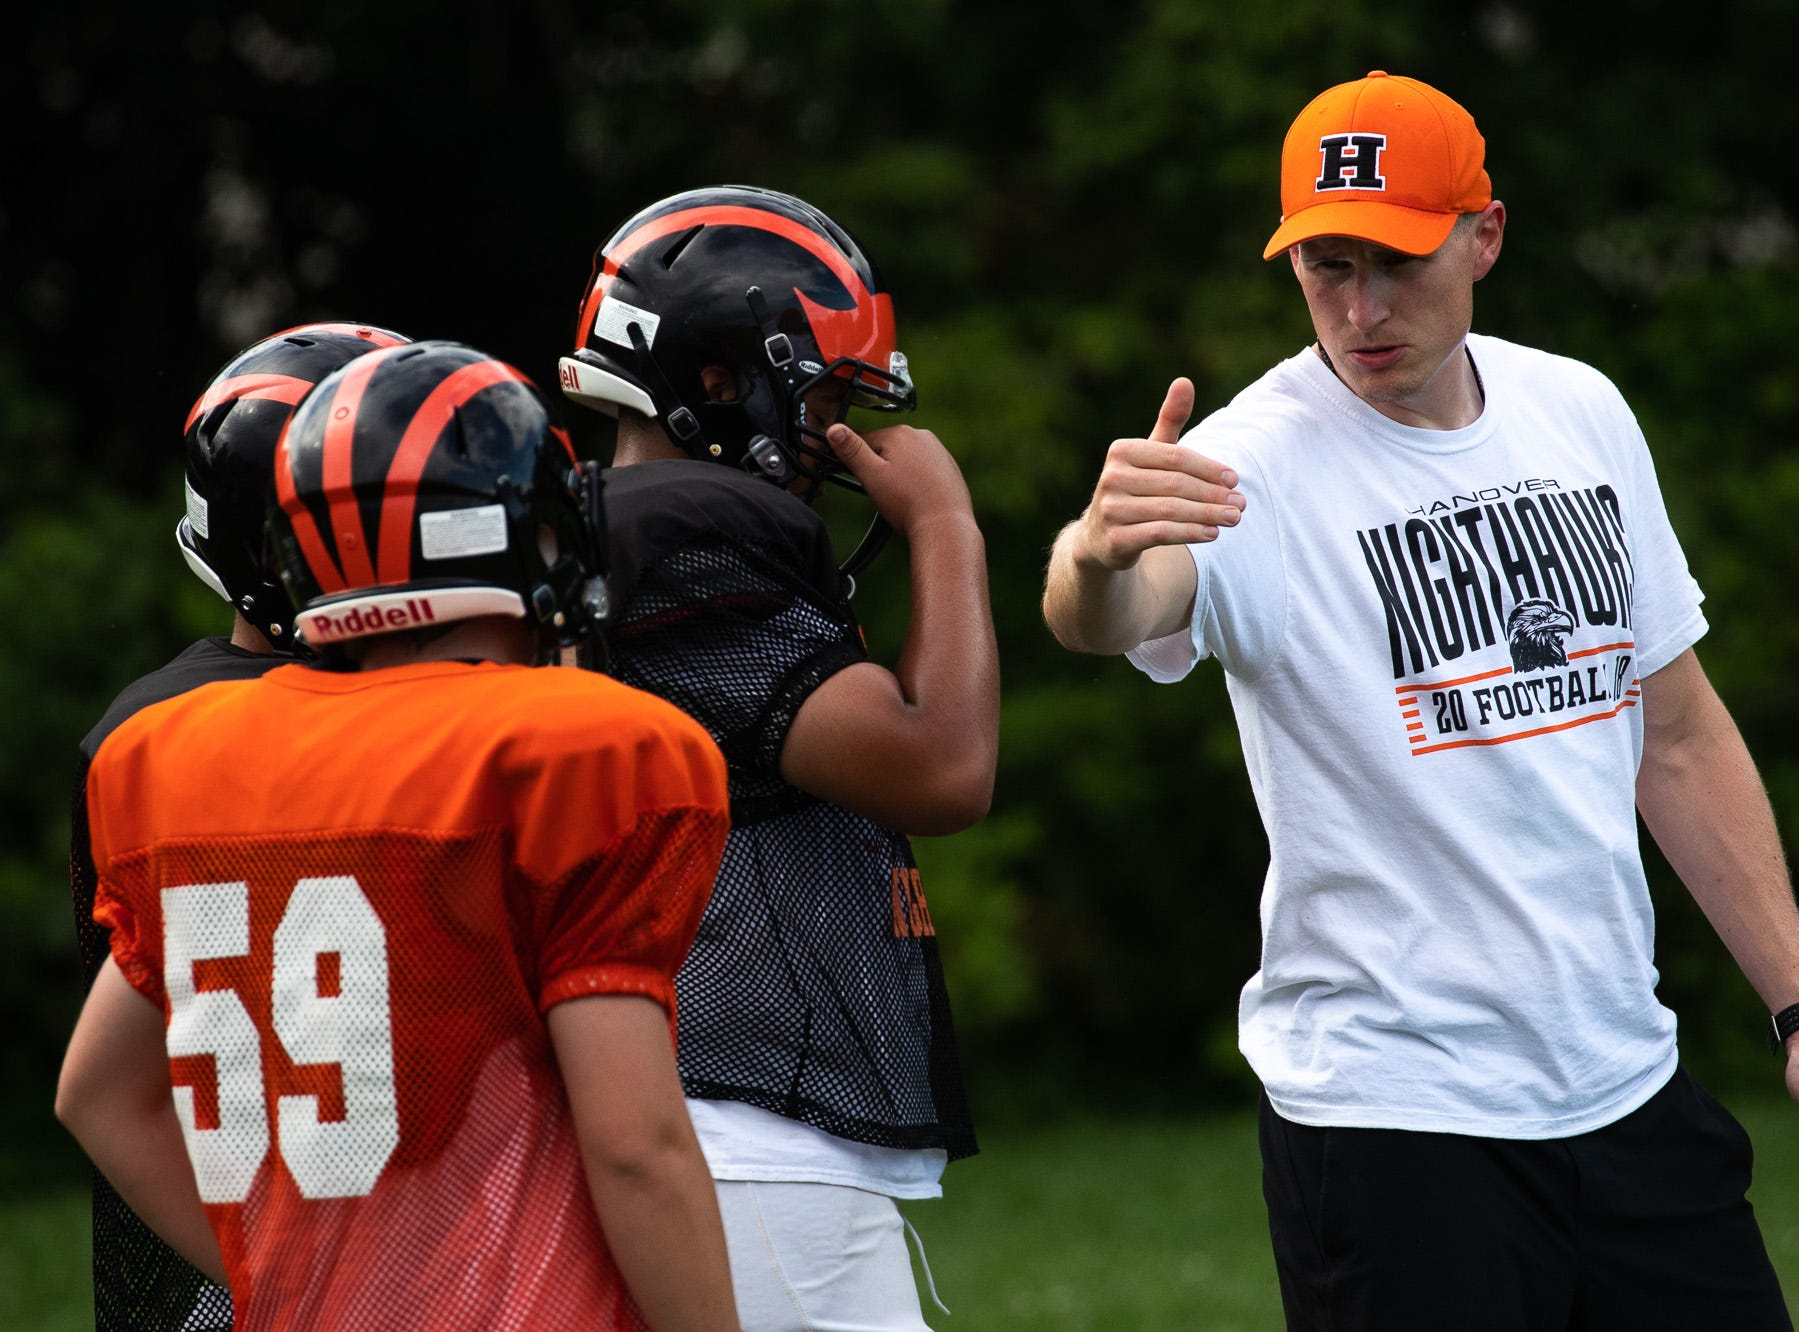 Hanover High School football head coach Brandon Bishop guides members of his team during practice on the first day of fall sports practice, Monday, Aug. 13, 2018, at the Sheppard-Meyers Stadium.